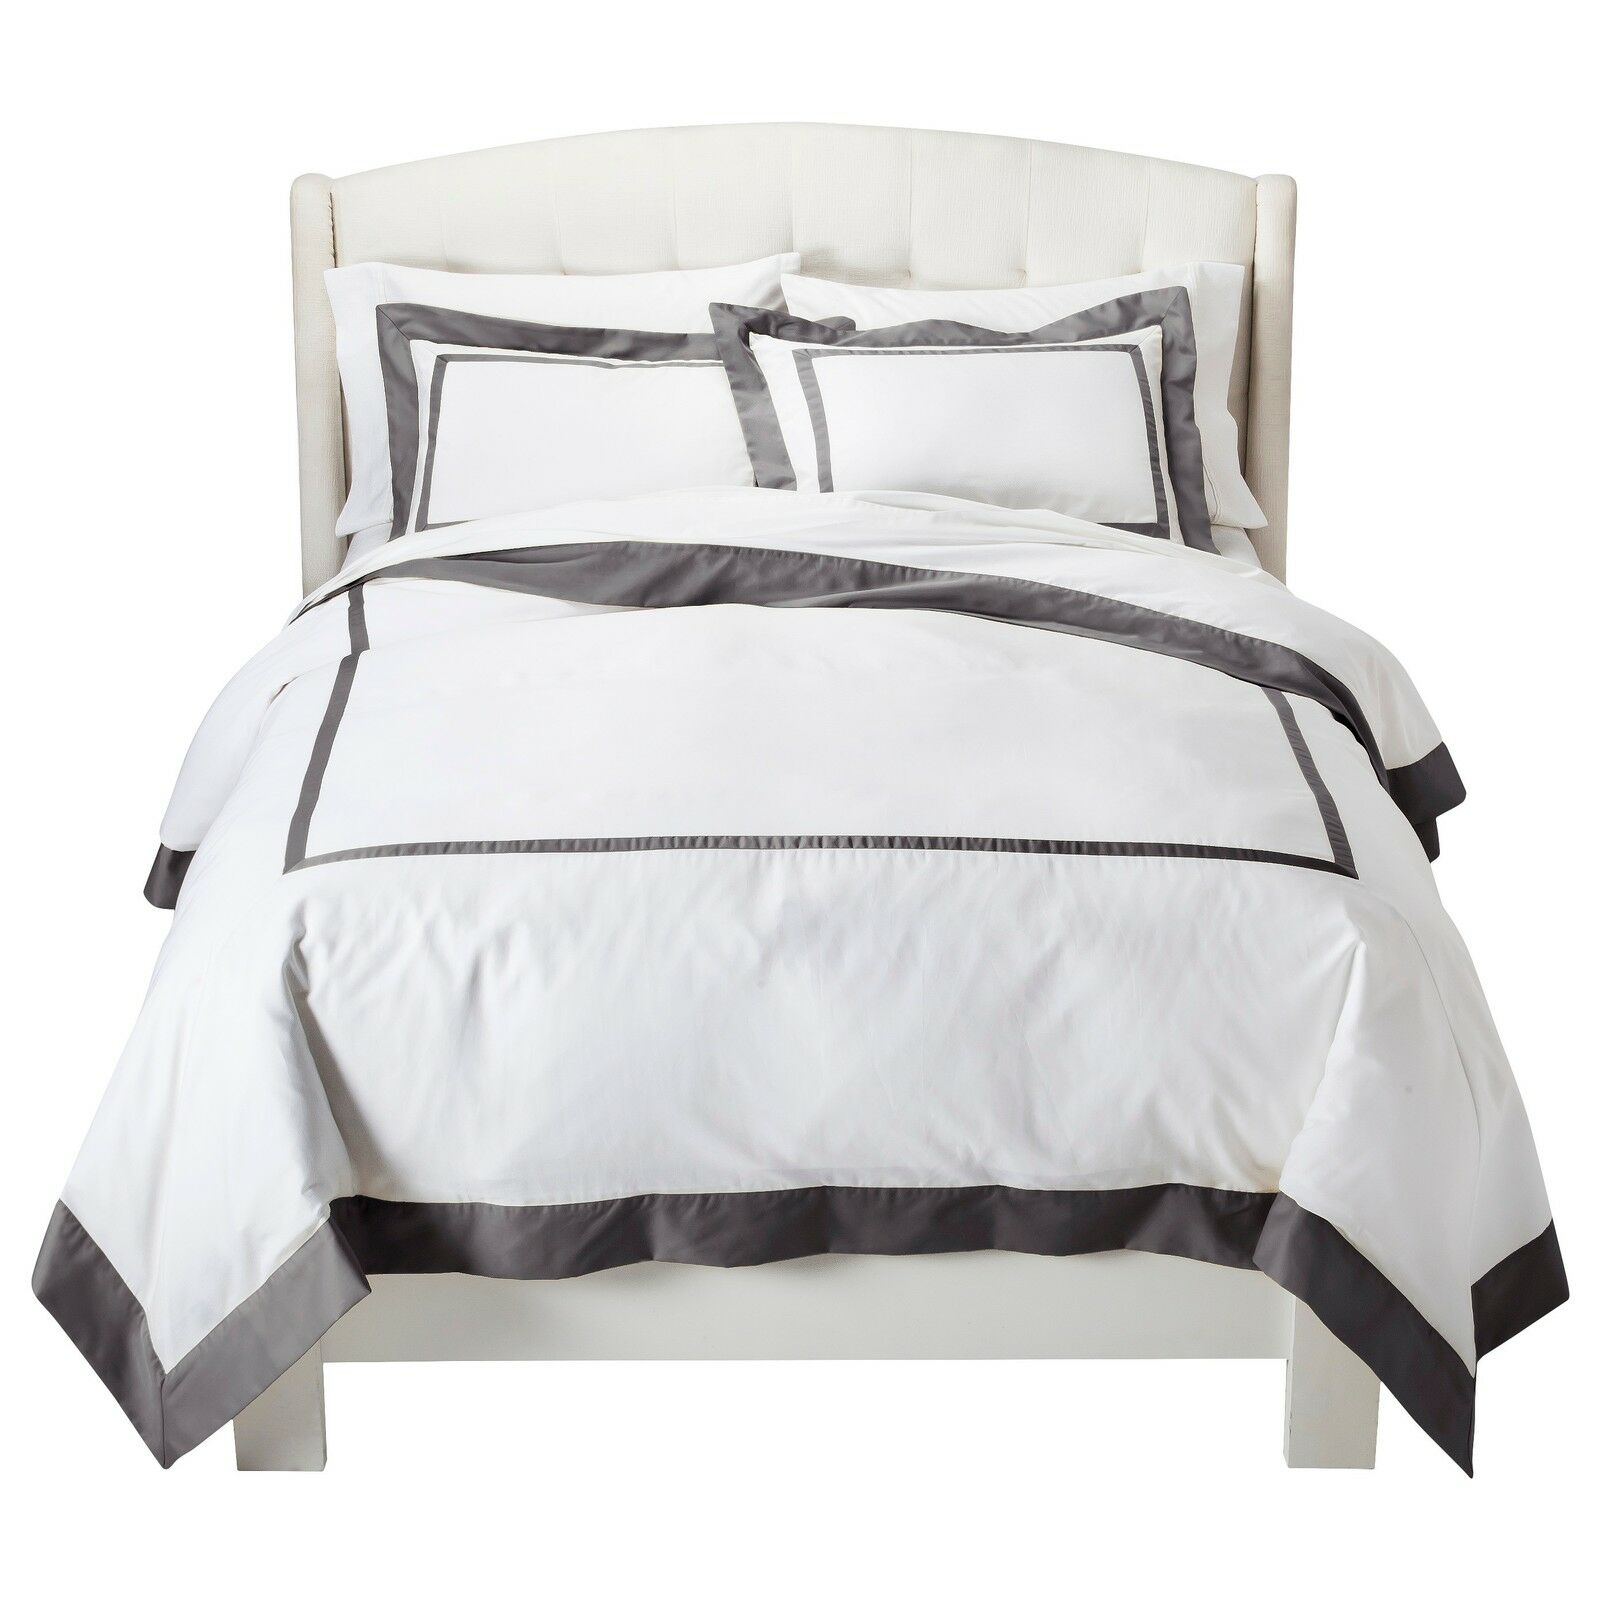 Fieldcrest King Size Bed Sheets: Fieldcrest Luxury Duvet Cover